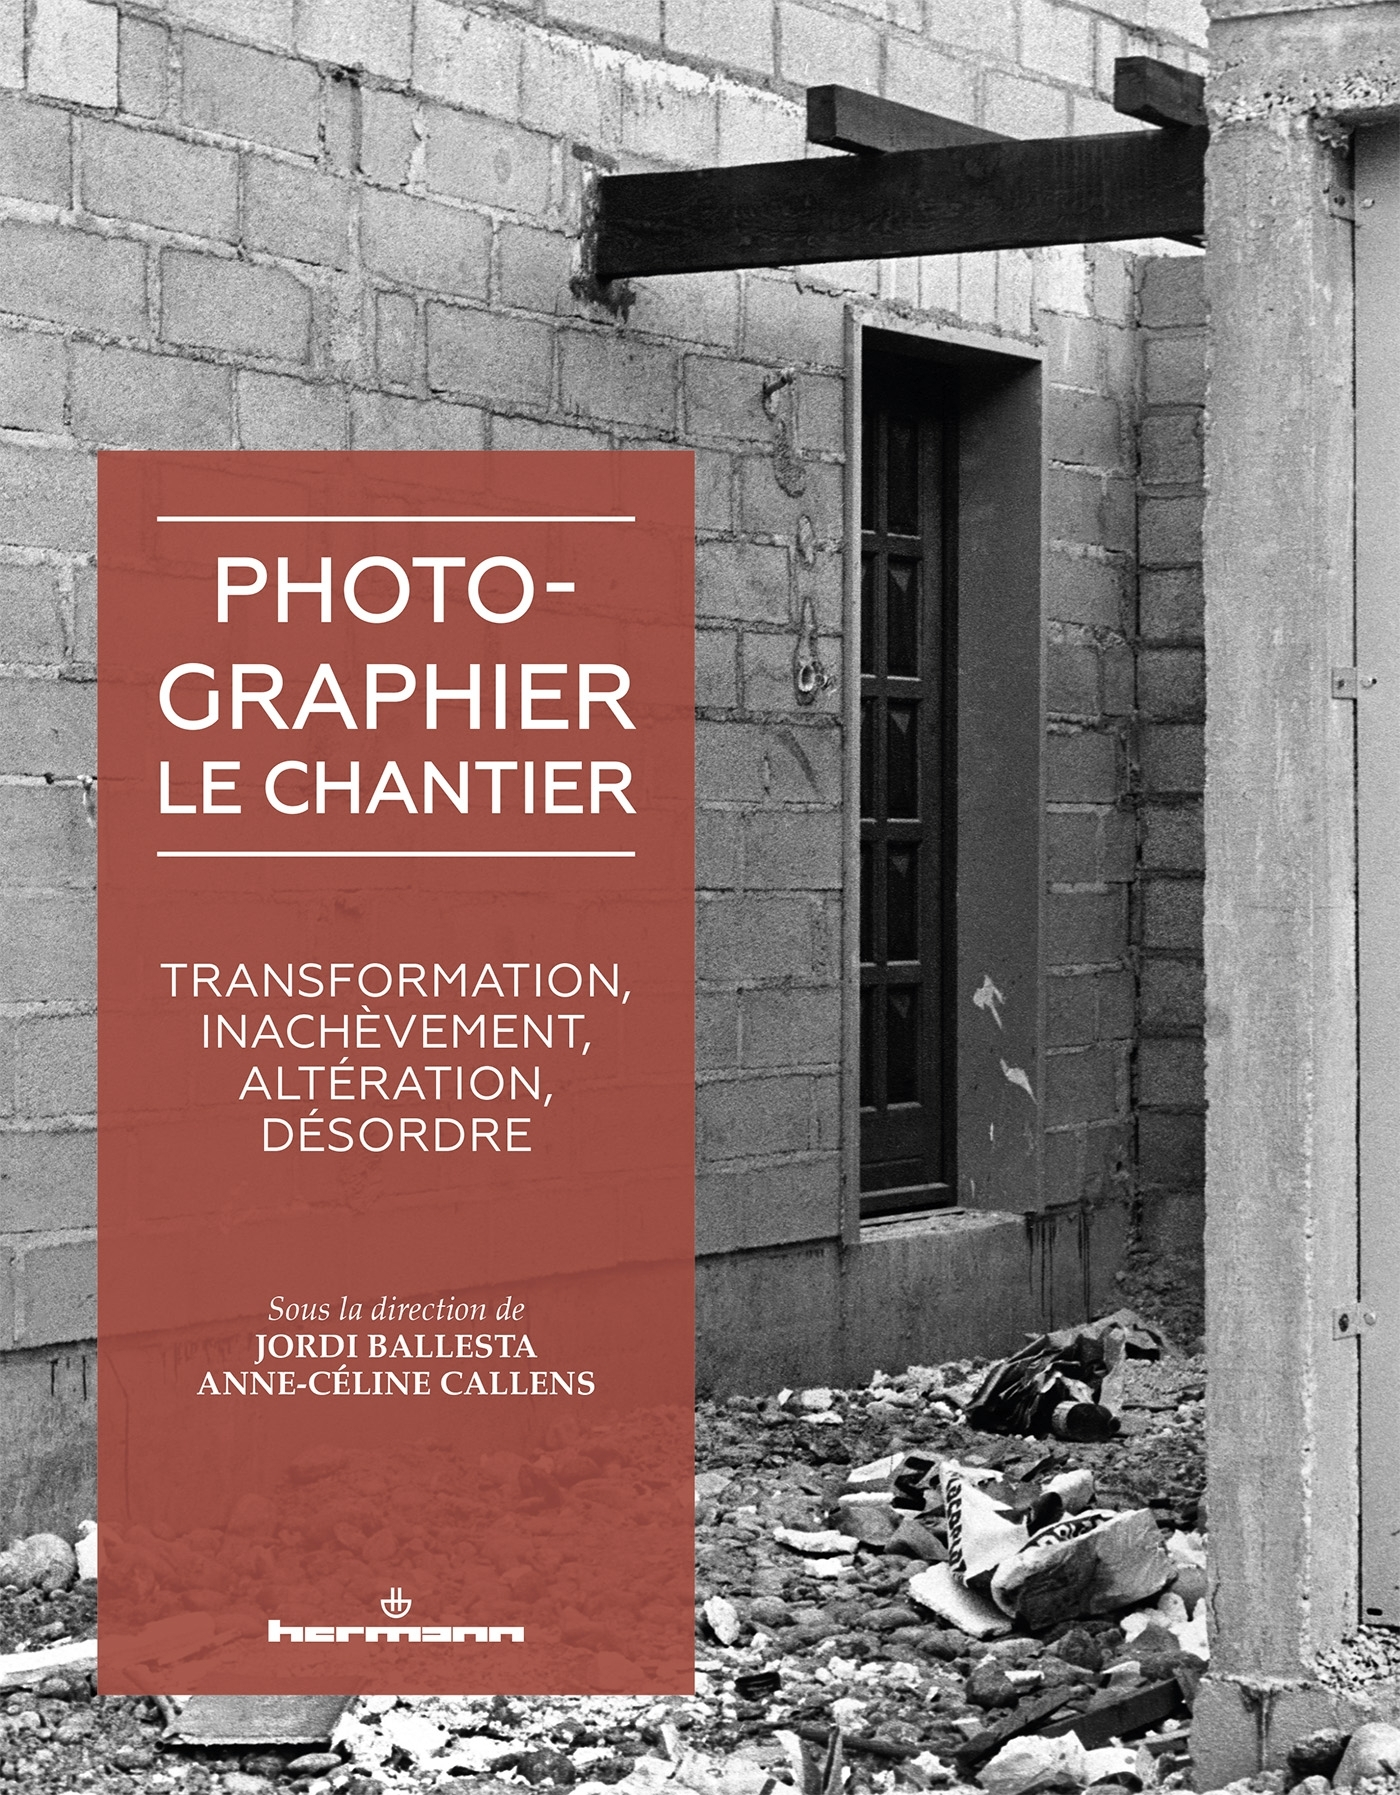 PHOTOGRAPHIER LE CHANTIER - TRANSFORMATION, INACHEVEMENT, ALTERATION, DESORDRE